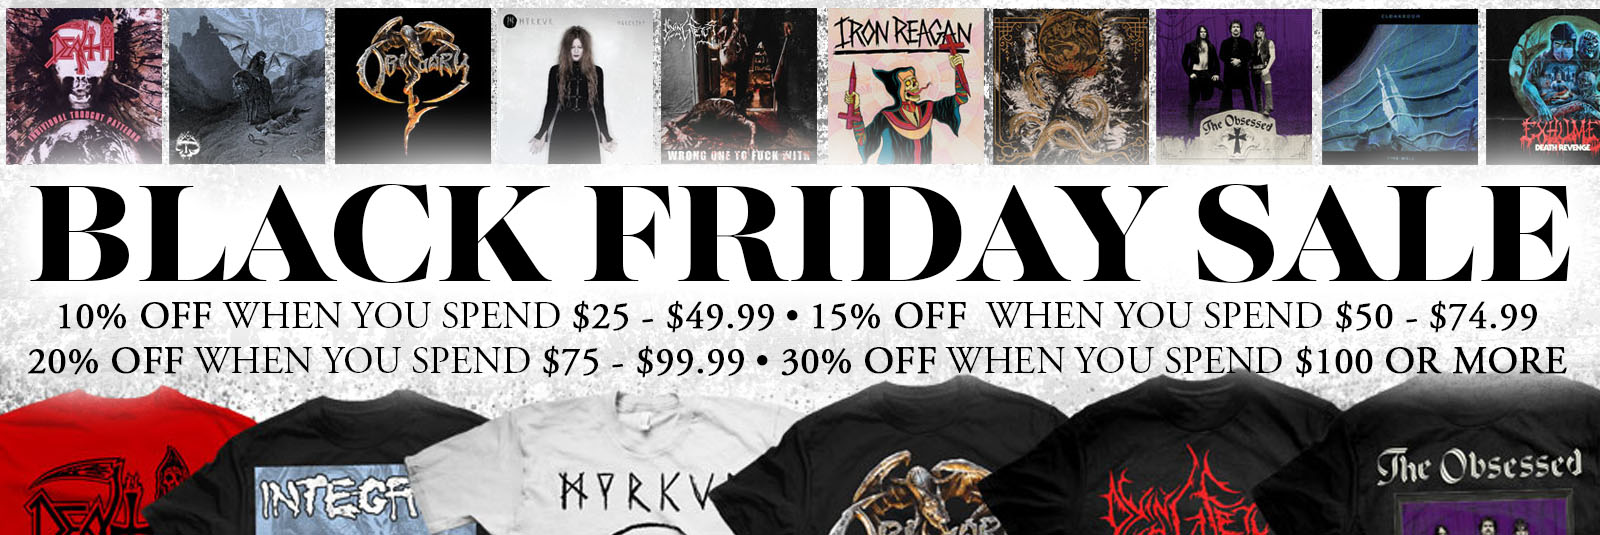 relapse-black-friday-sale